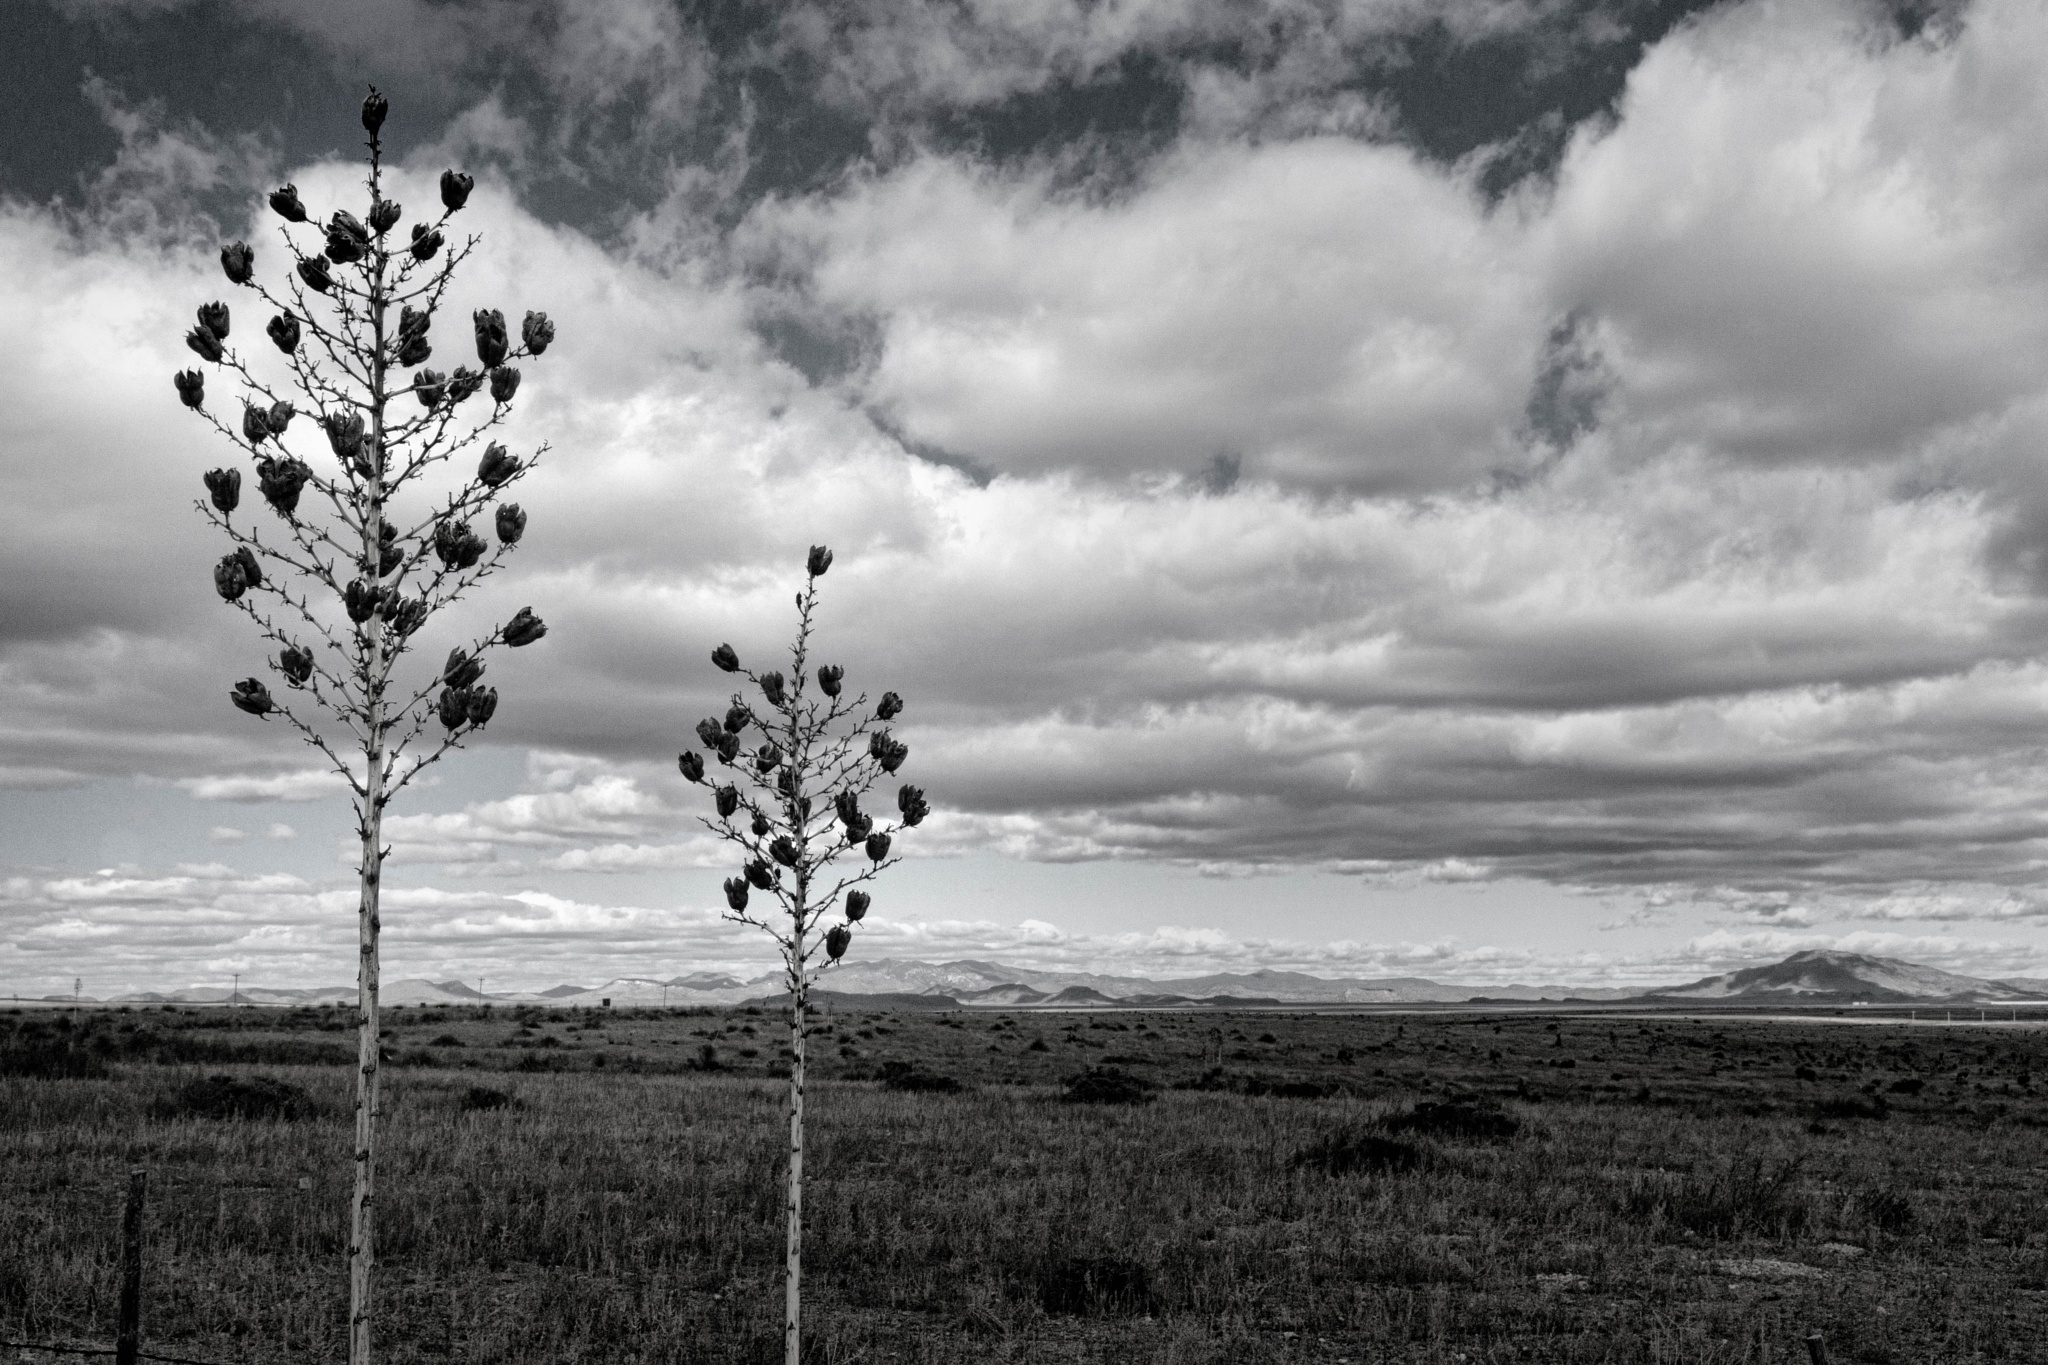 December on The Marfa Plateau by John Mark Jennings